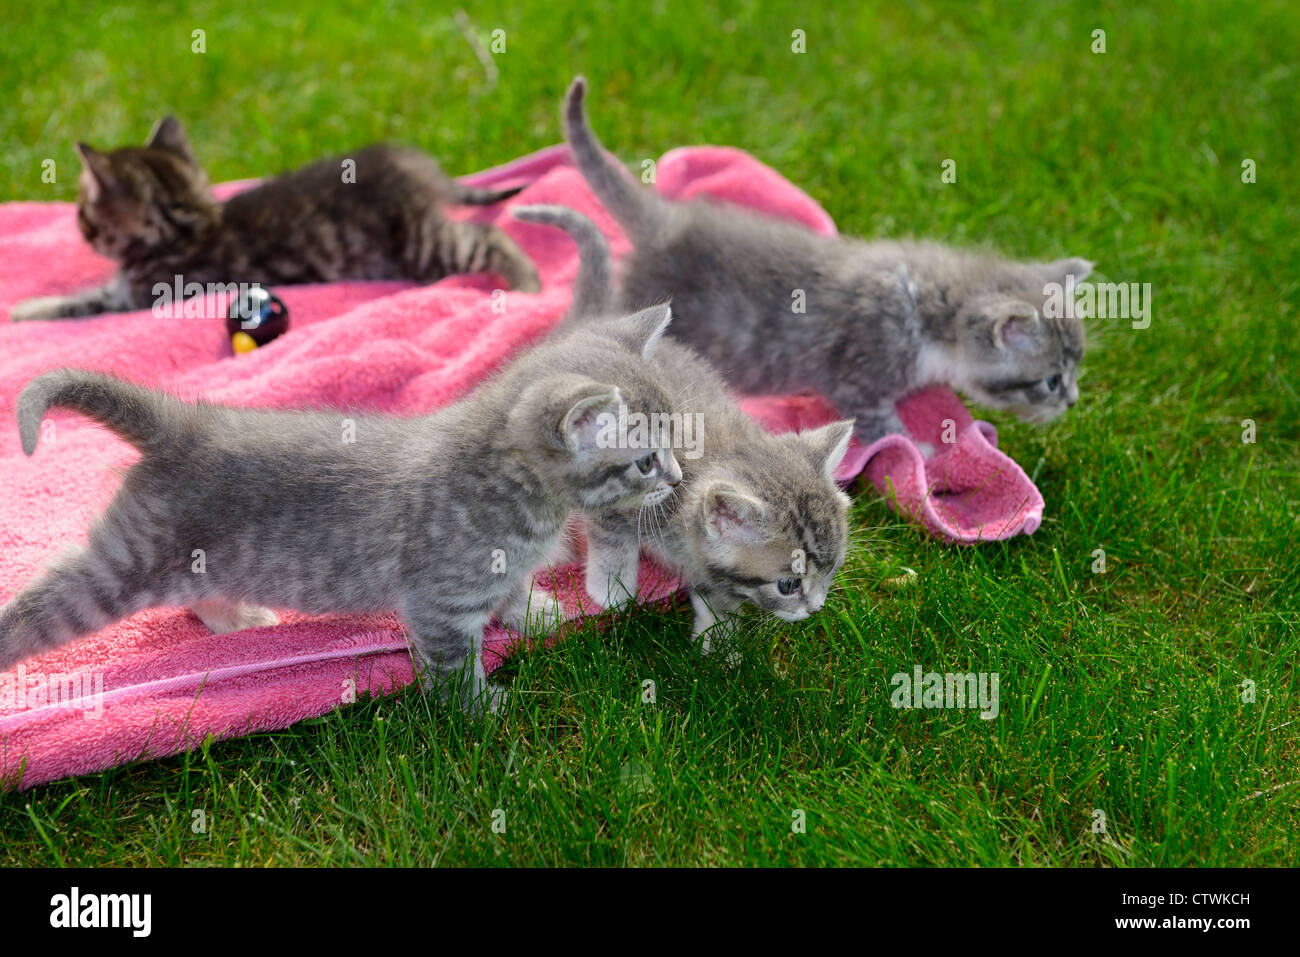 Cute gray tabby kitten littermates first venture outdoors nervous about stepping on grass lawn - Stock Image